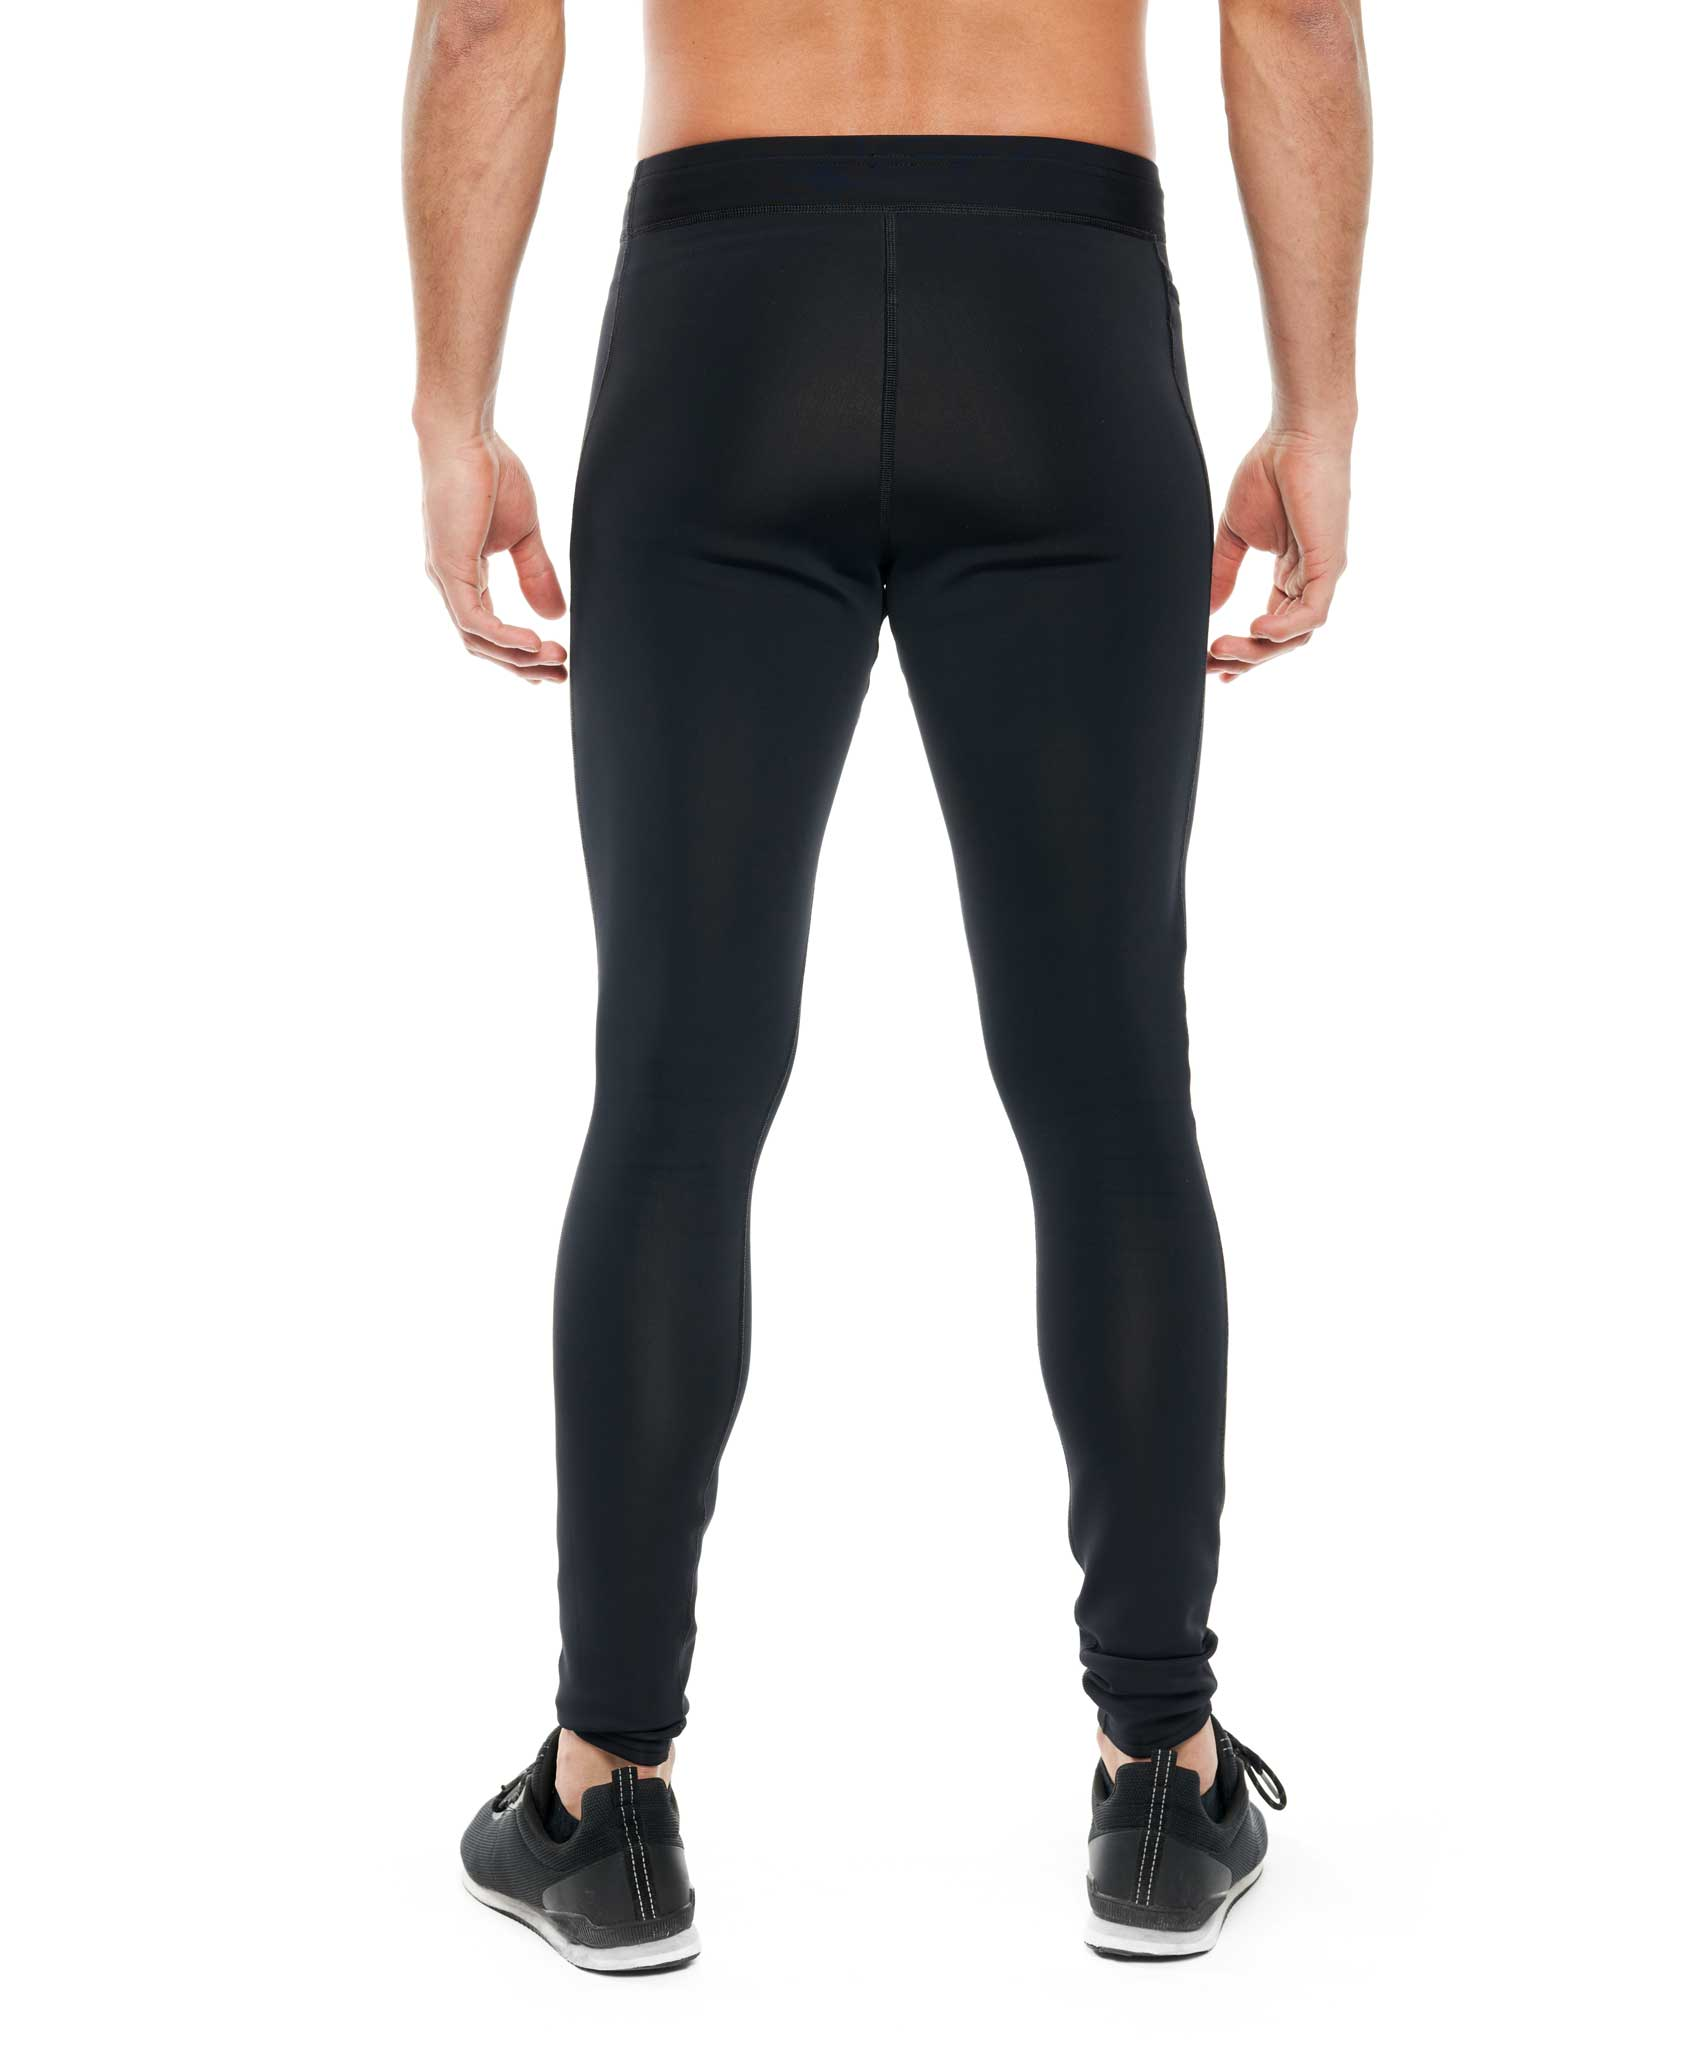 Men's Functional Tights - Pommello